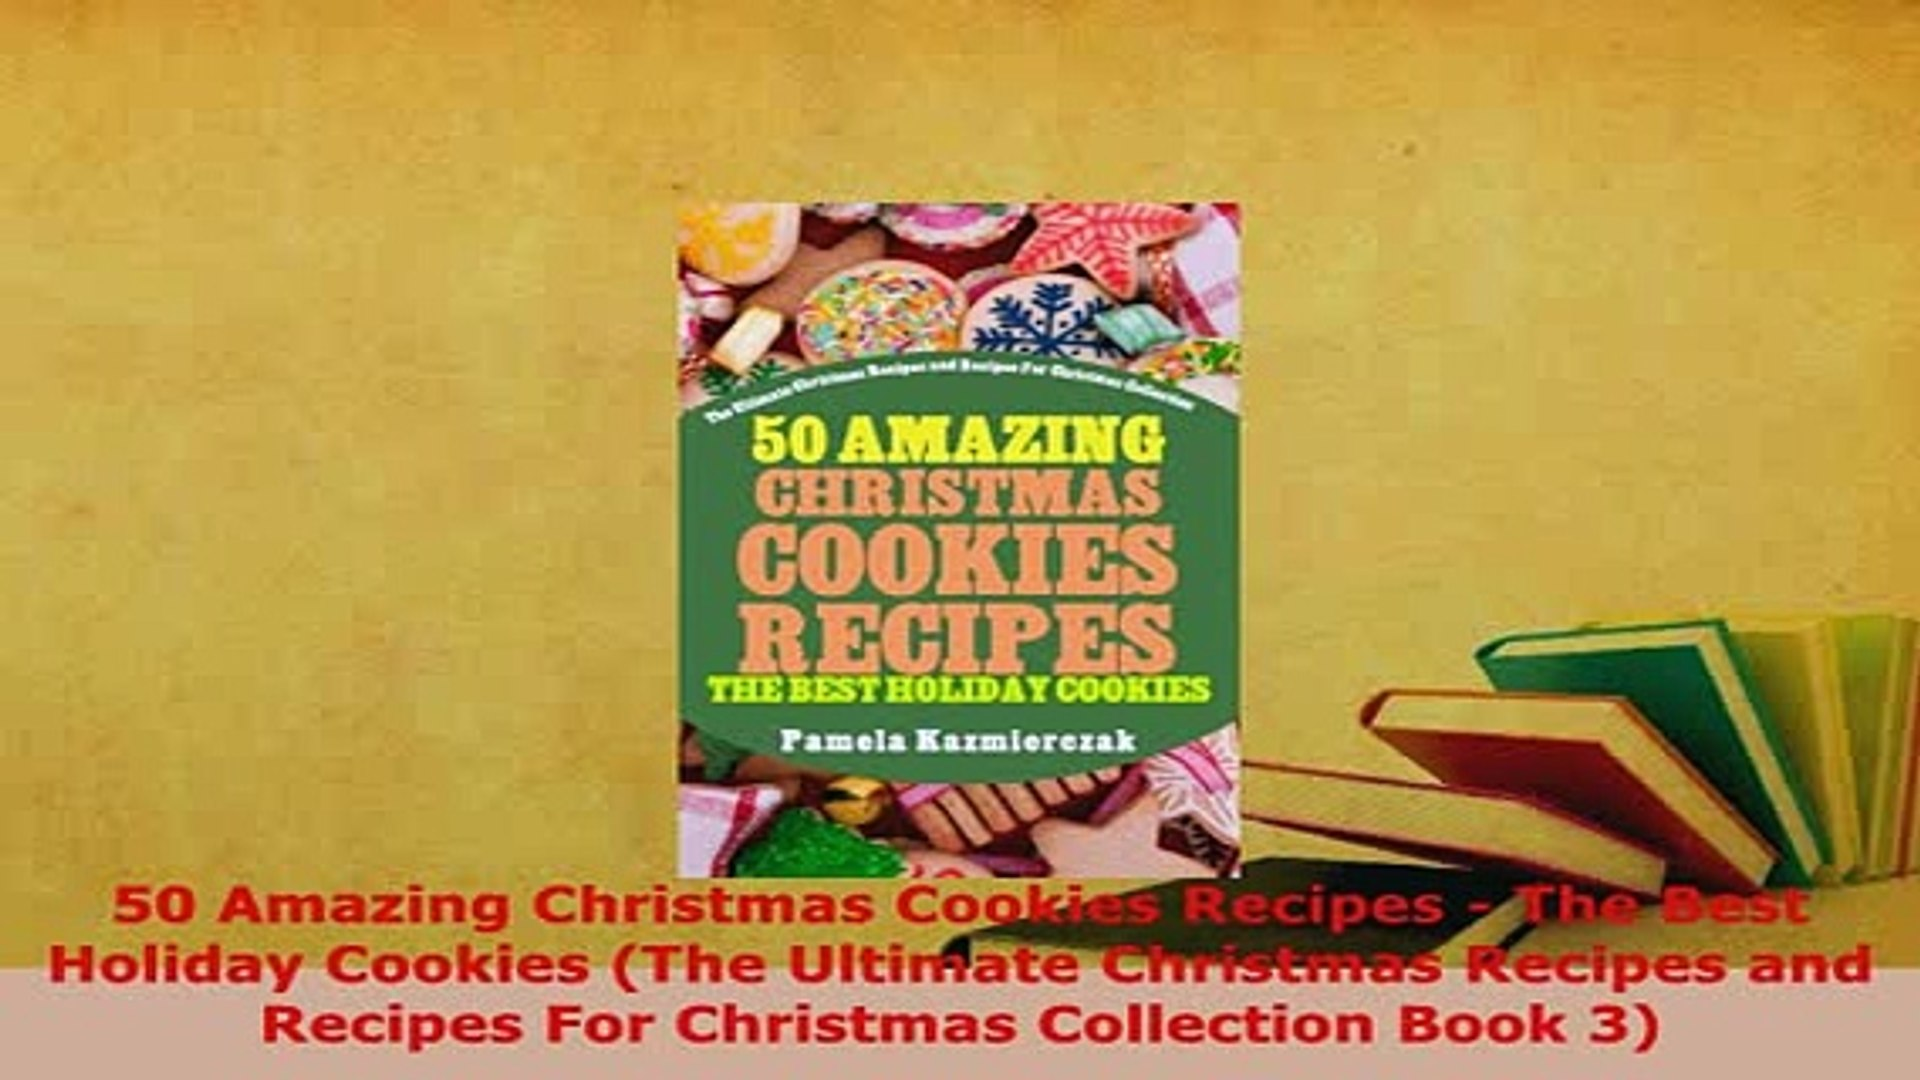 Pdf 50 Amazing Christmas Cookies Recipes The Best Holiday Cookies The Ultimate Christmas Download Full Ebook